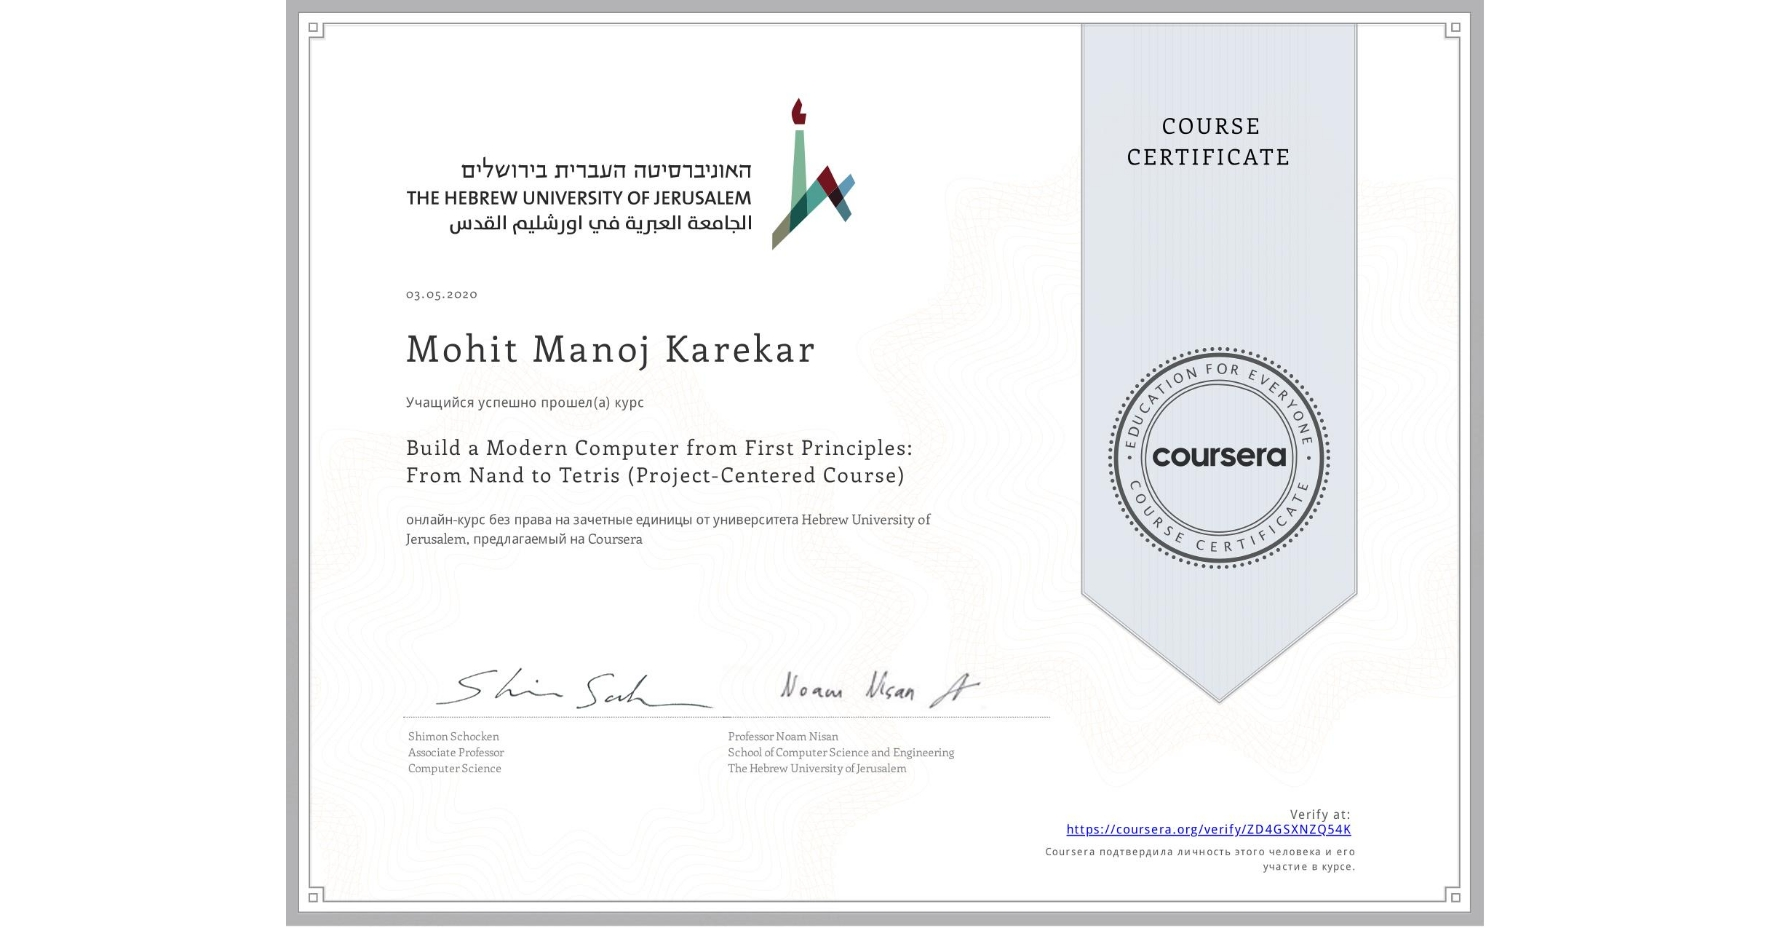 View certificate for Mohit Manoj Karekar, Build a Modern Computer from First Principles: From Nand to Tetris (Project-Centered Course), an online non-credit course authorized by Hebrew University of Jerusalem and offered through Coursera